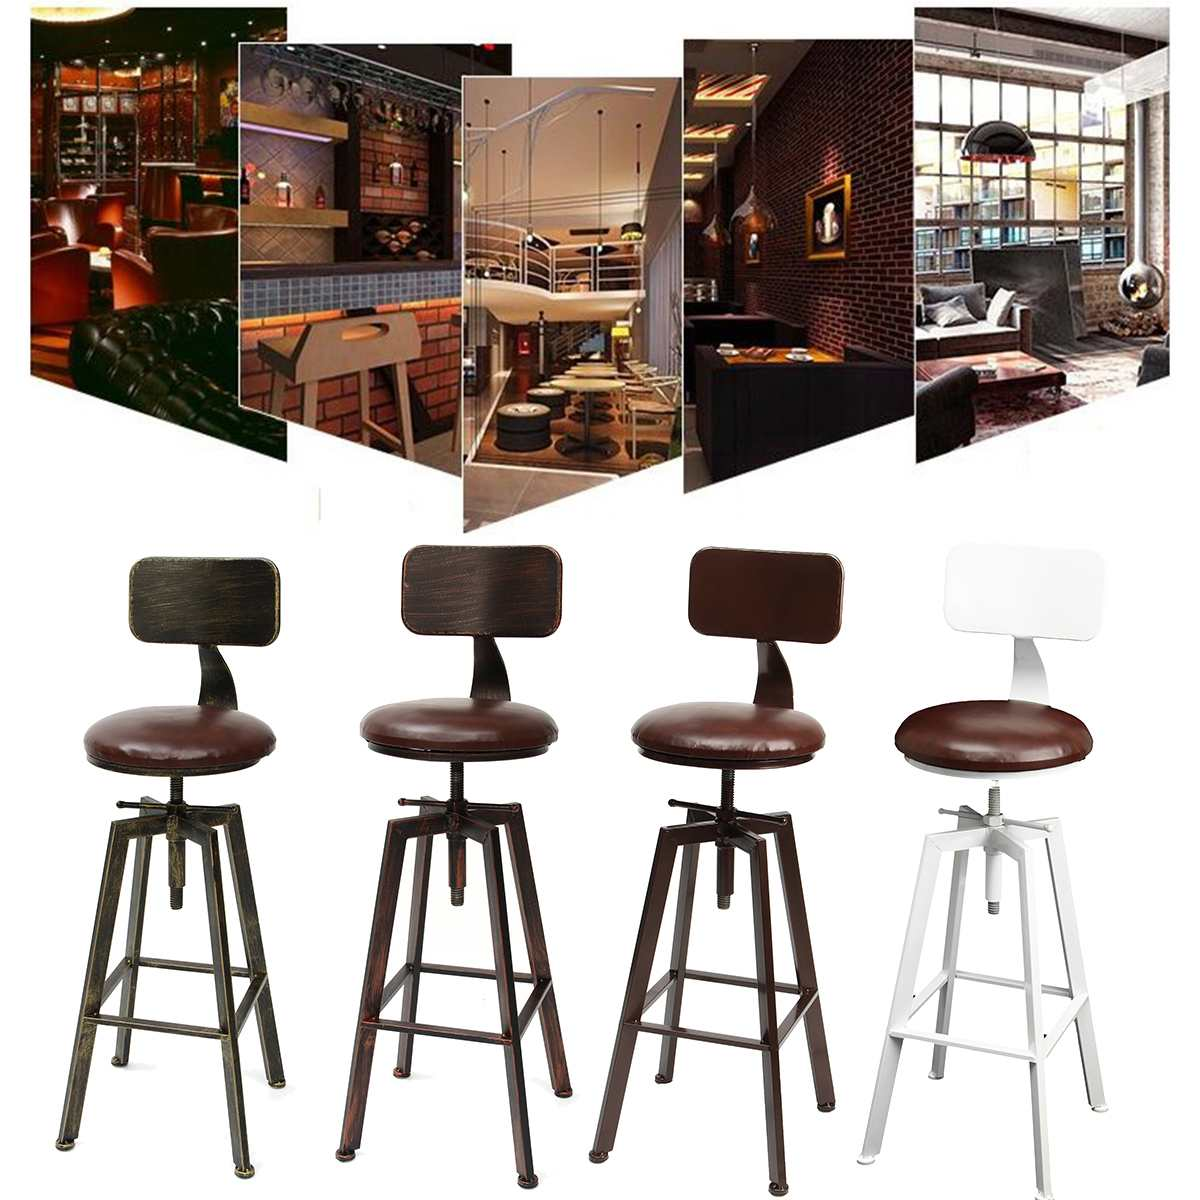 4 Colors Vintage Retro Craft PU Leather Bar Chair Stool 360 Degree Rotate Counter Lift High Chair Stool Home Bar Decoration New4 Colors Vintage Retro Craft PU Leather Bar Chair Stool 360 Degree Rotate Counter Lift High Chair Stool Home Bar Decoration New